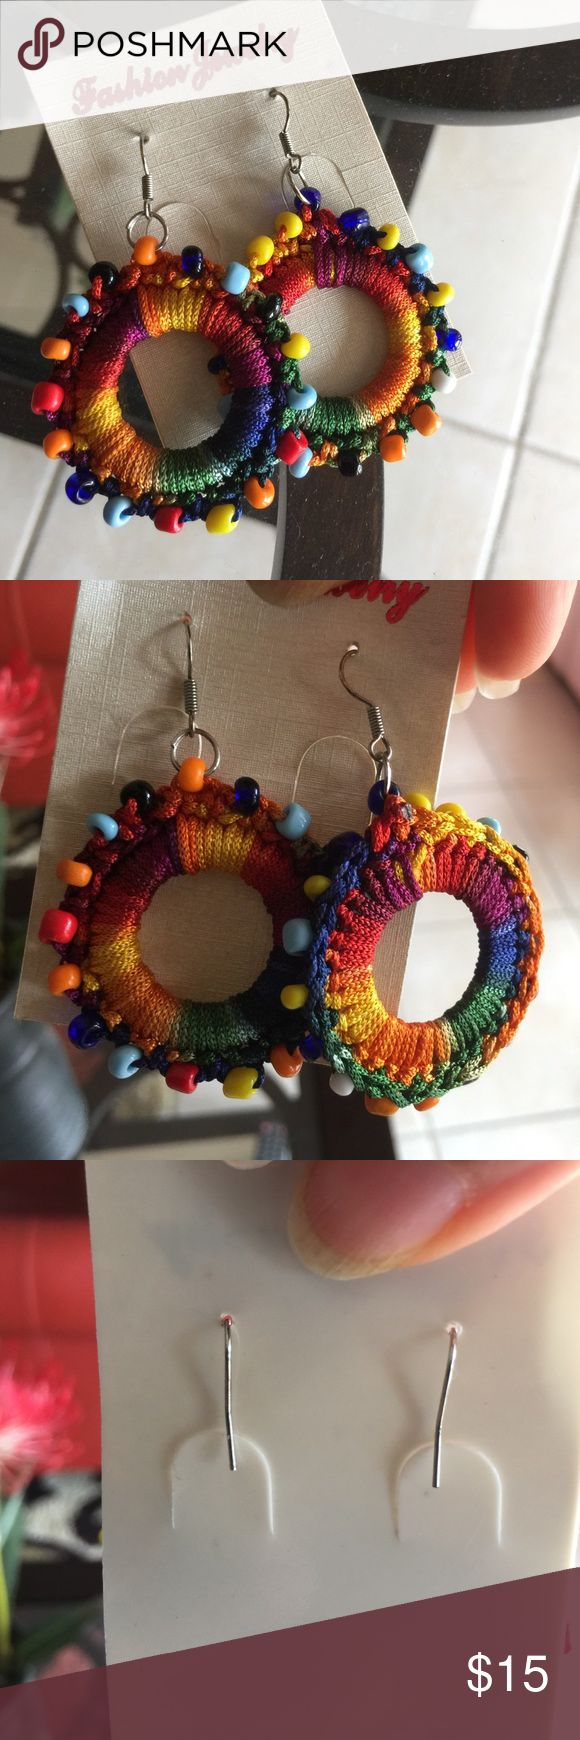 New Festive Earrings 😍 Gorgeous handmade earrings with colorful threads and cute little beads😊 Jewelry Earrings